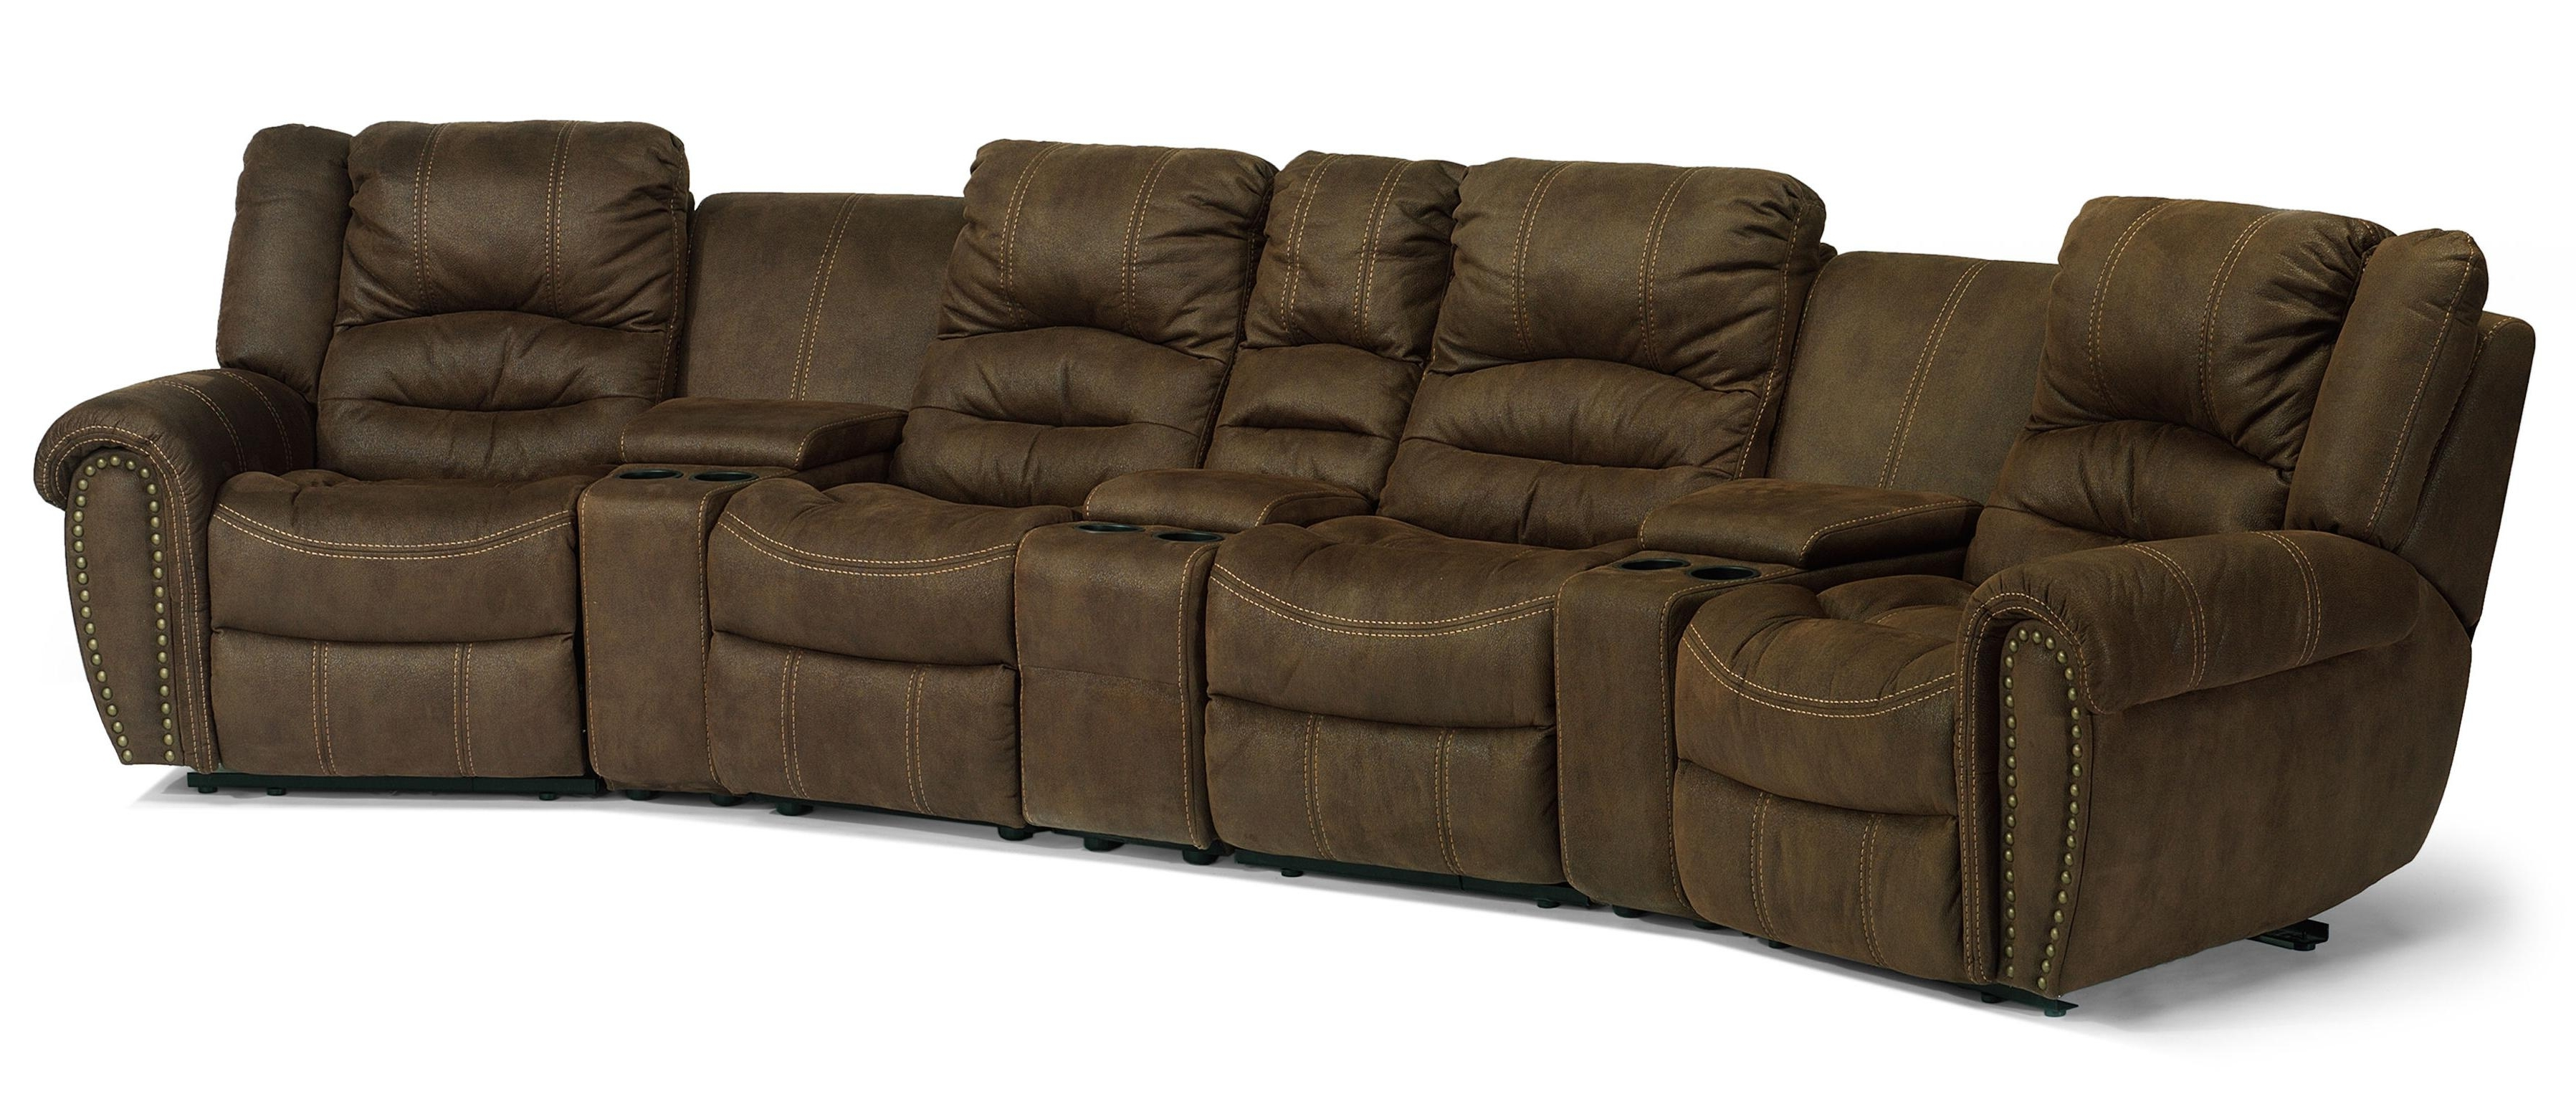 Most Popular Flexsteel Latitudes – New Town Curved Reclining Sectional Sofa Pertaining To Visalia Ca Sectional Sofas (View 20 of 20)